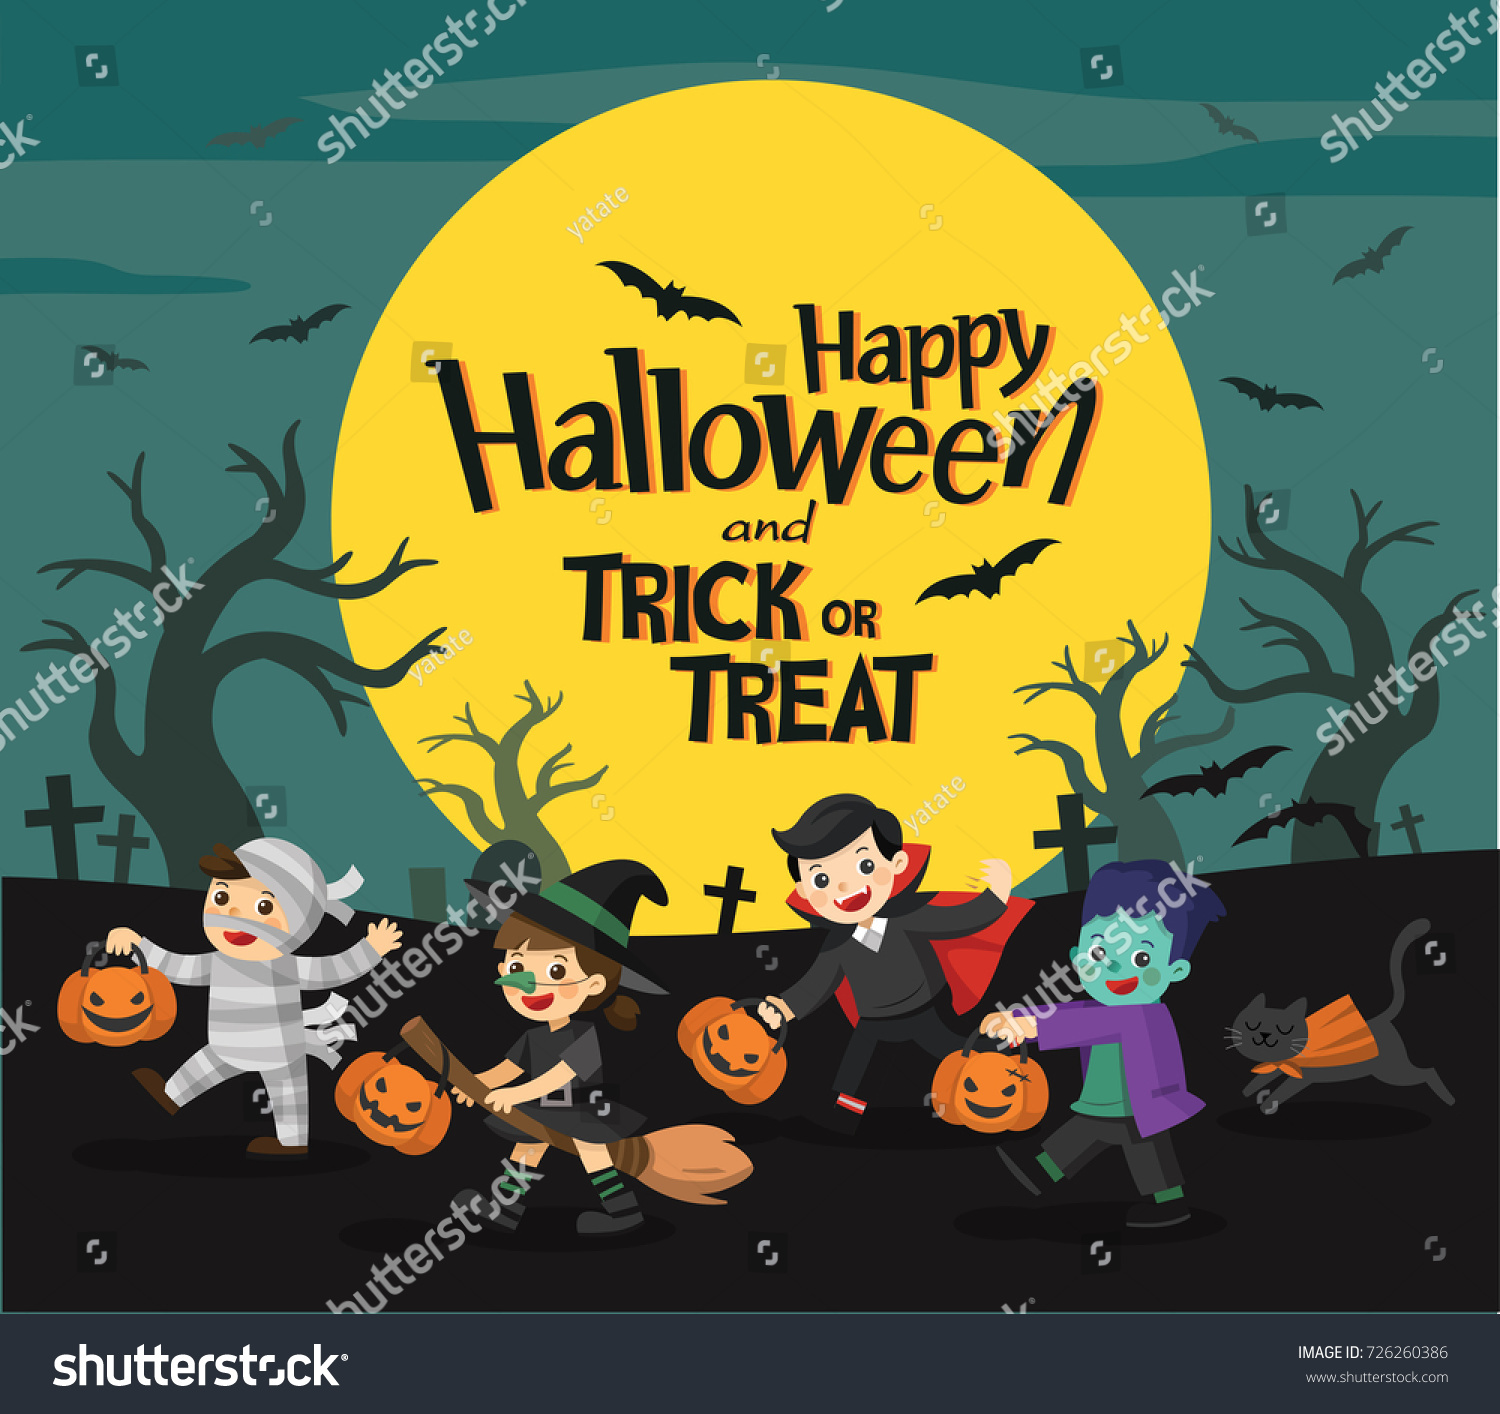 Children Dressed In Halloween Fancy Dress To Go Trick Or Treating. Happy  Halloween. Template